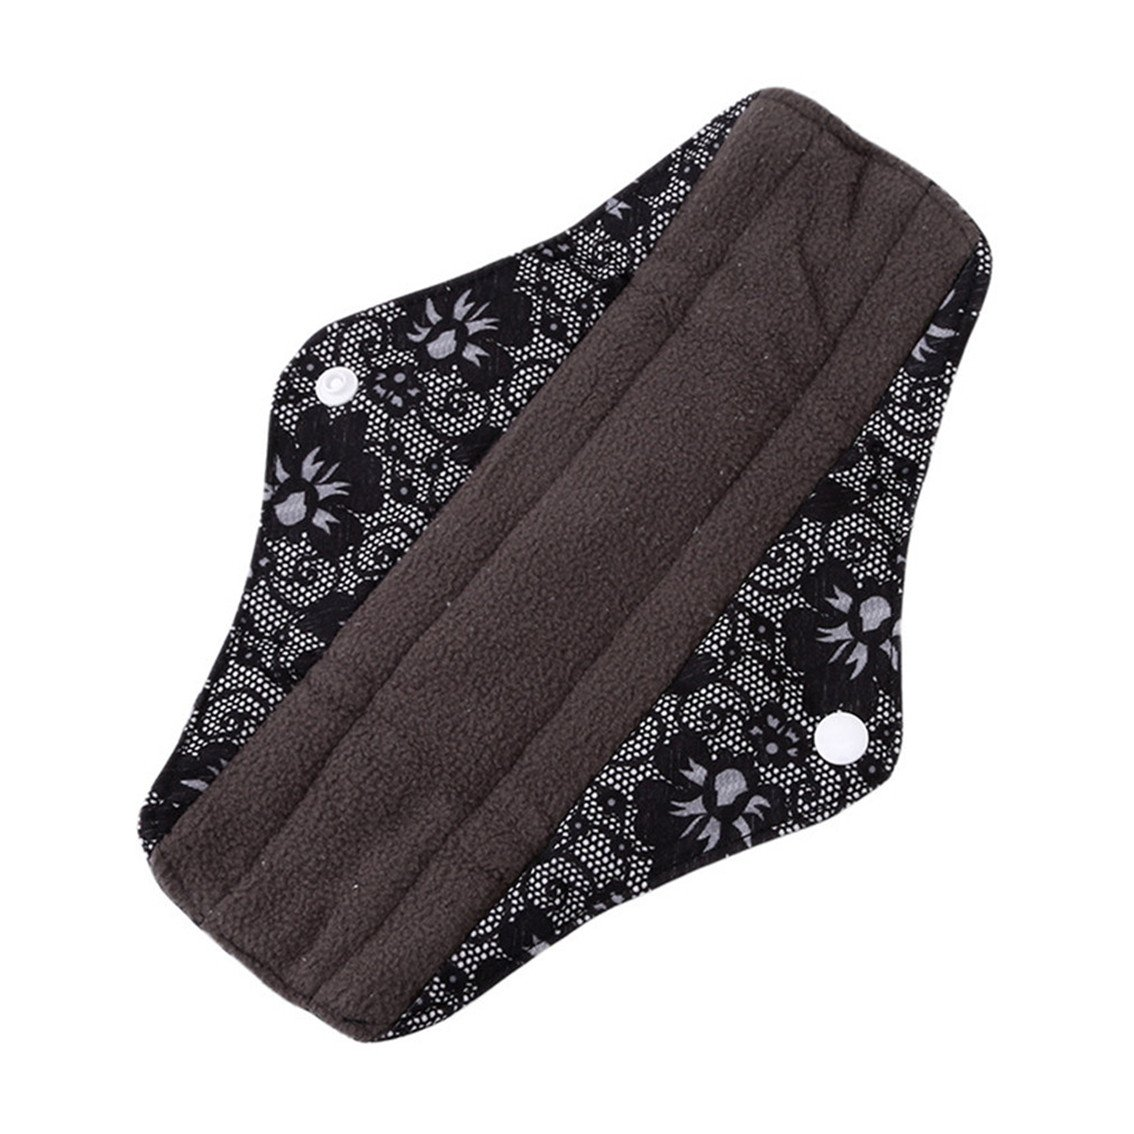 Yesiidor Black Cloth Menstrual Pads Reusable Sanitary Napkins - Perfect For Heavy Flow Or Overnight Avoid Leaks M